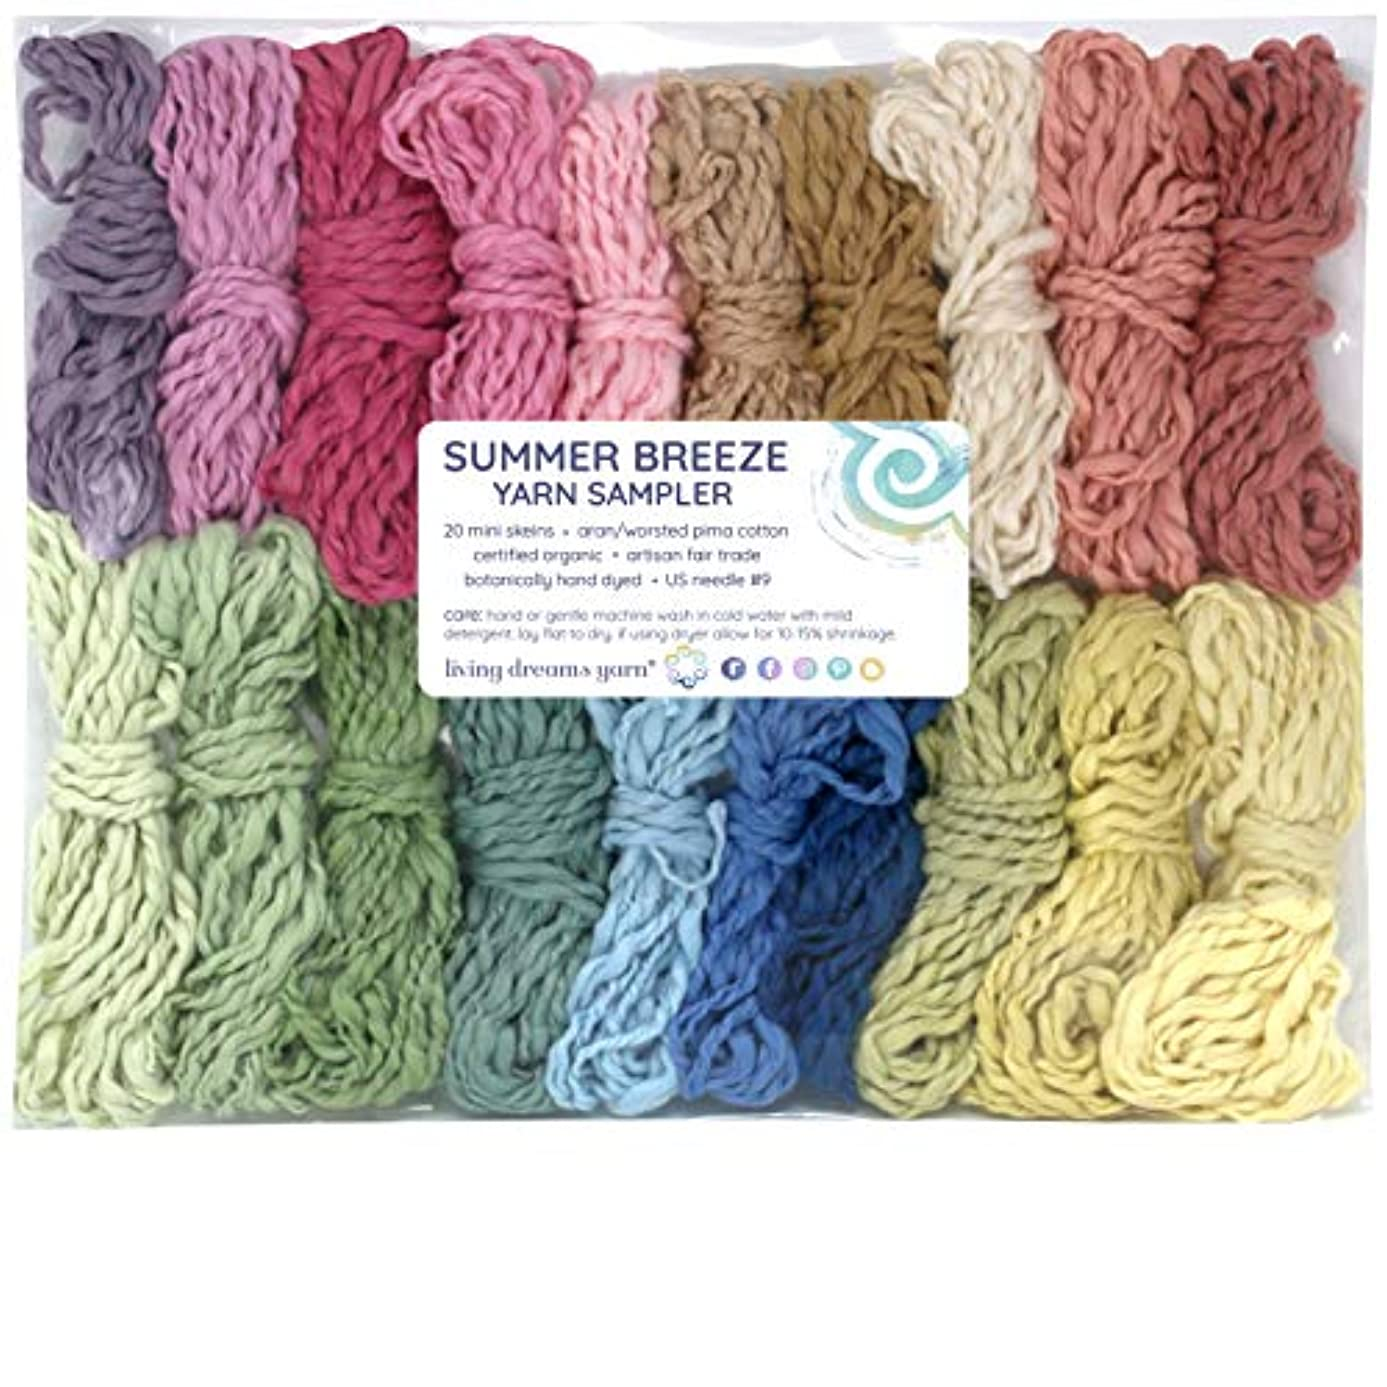 Living Dreams Yarn SUMMER BREEZE Yarn Sampler - Certified Organic Pima Cotton Hand Dyed with Peruvian Botanicals. Cruelty Free & Fair Trade. 20 Color Samples